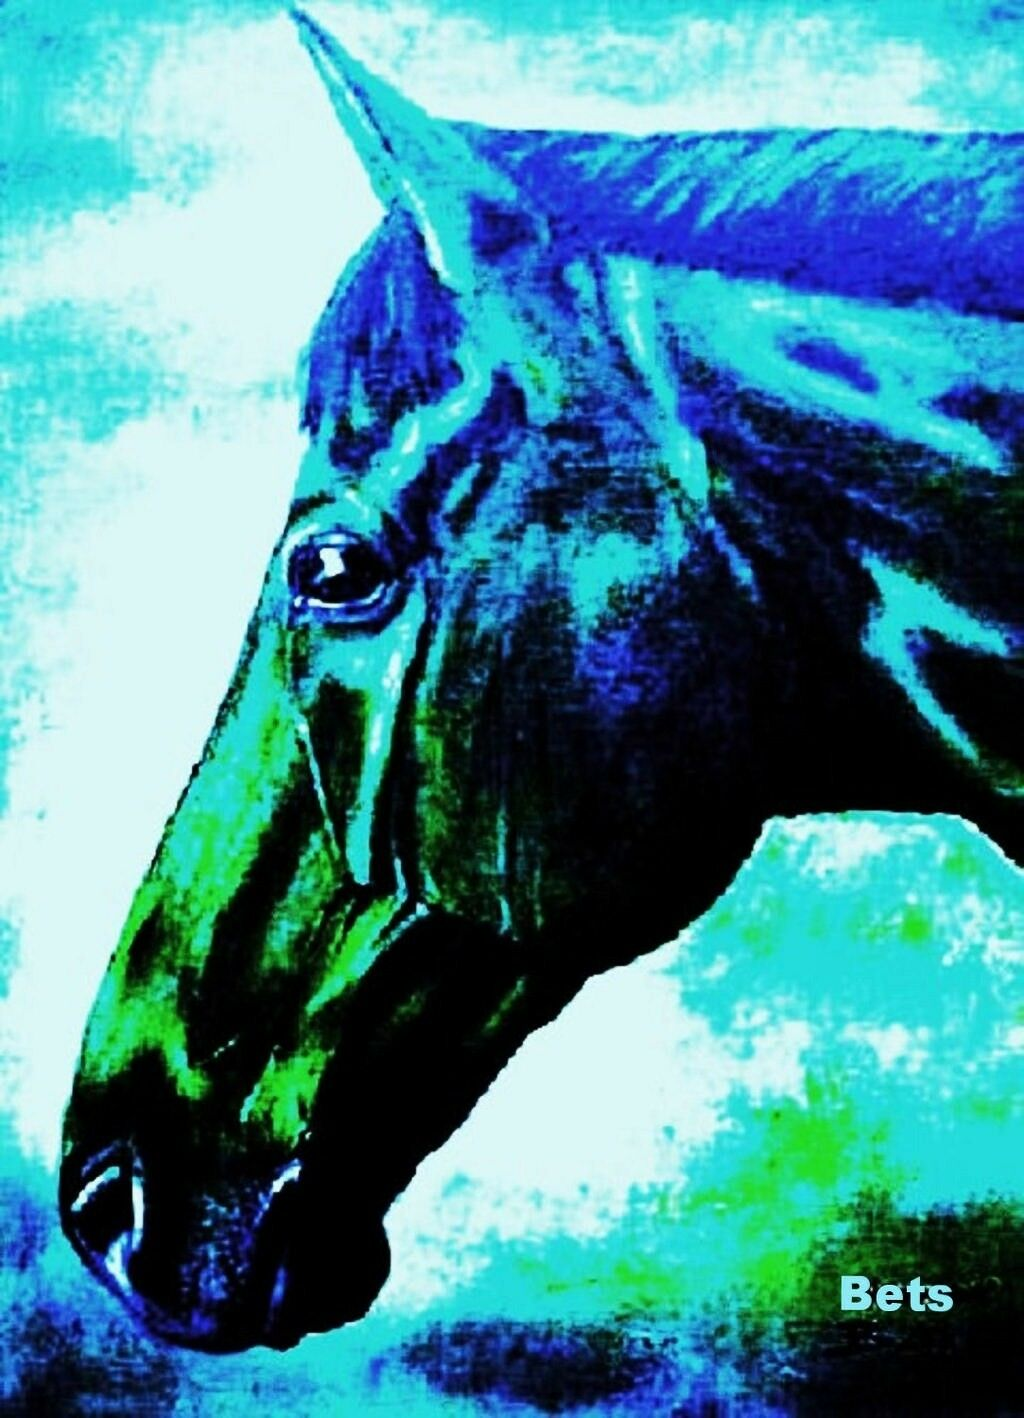 HORSE PRINT Giclee  BAY Horse PRINCETON artist BETS 7 COLORS print size 14 X 18  selling well all over the world